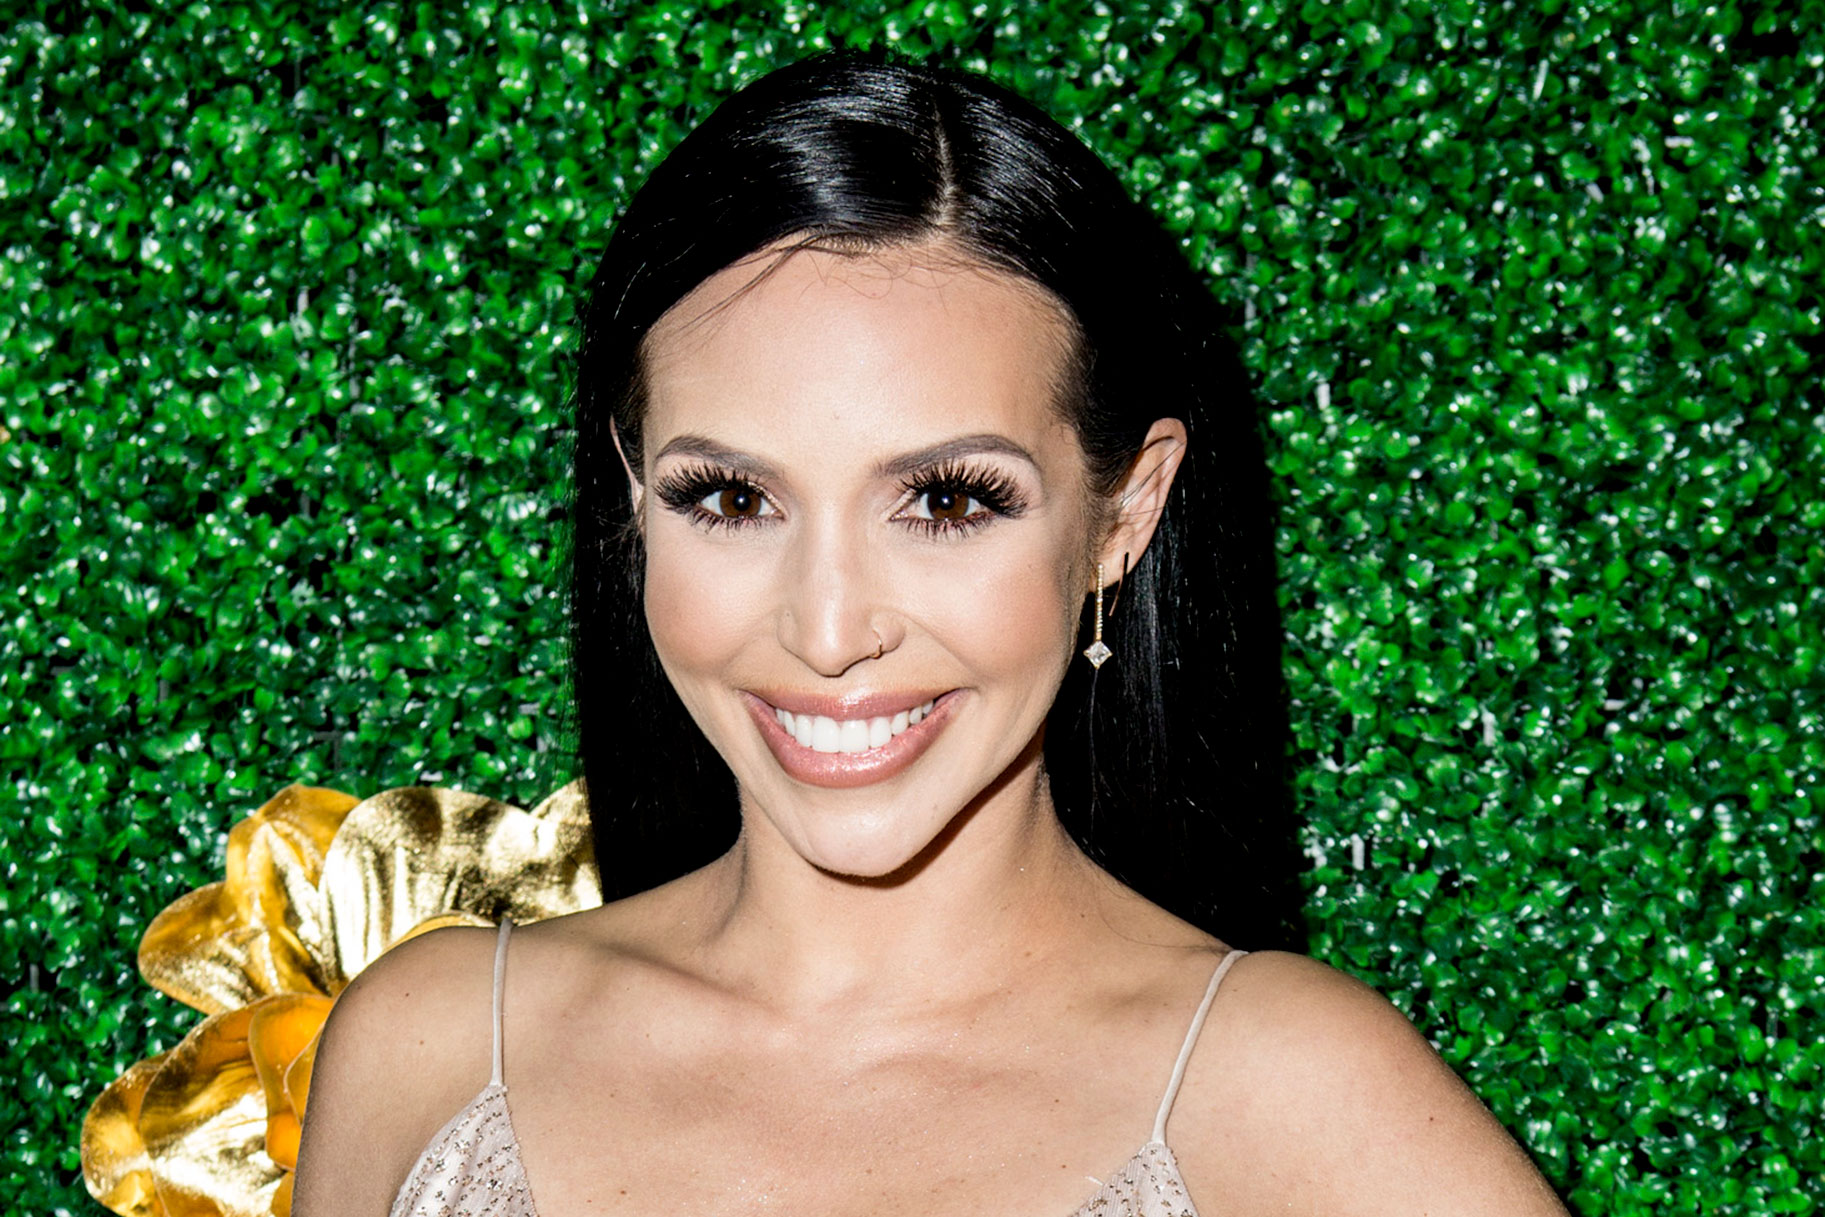 scheana-marie-announces-shes-pregnant-only-4-months-after-suffering-miscarriage